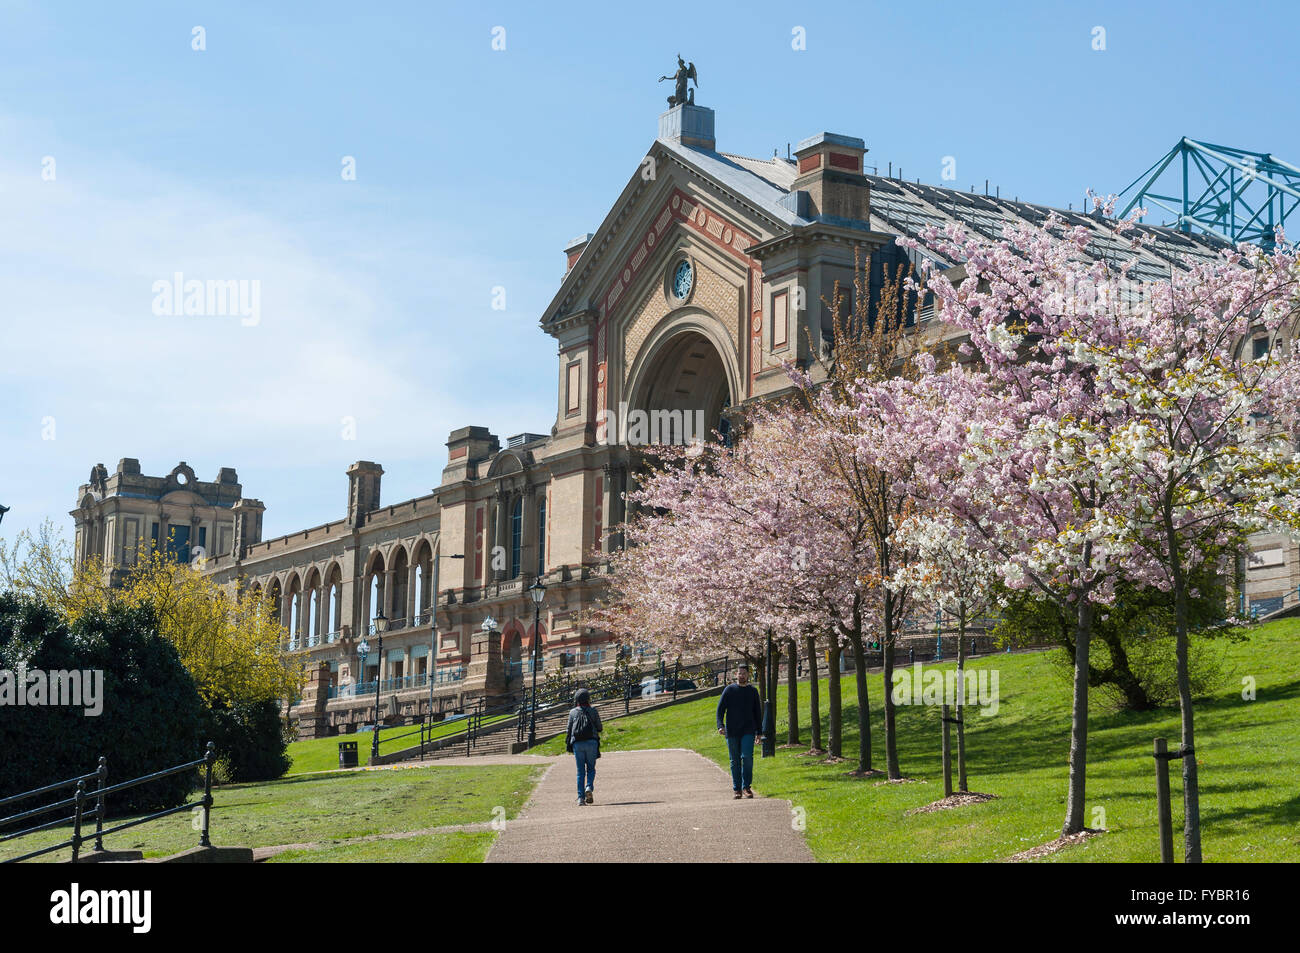 Alexandra Palace, Alexandra Park, London Borough of Haringey, Greater London, England, United Kingdom - Stock Image